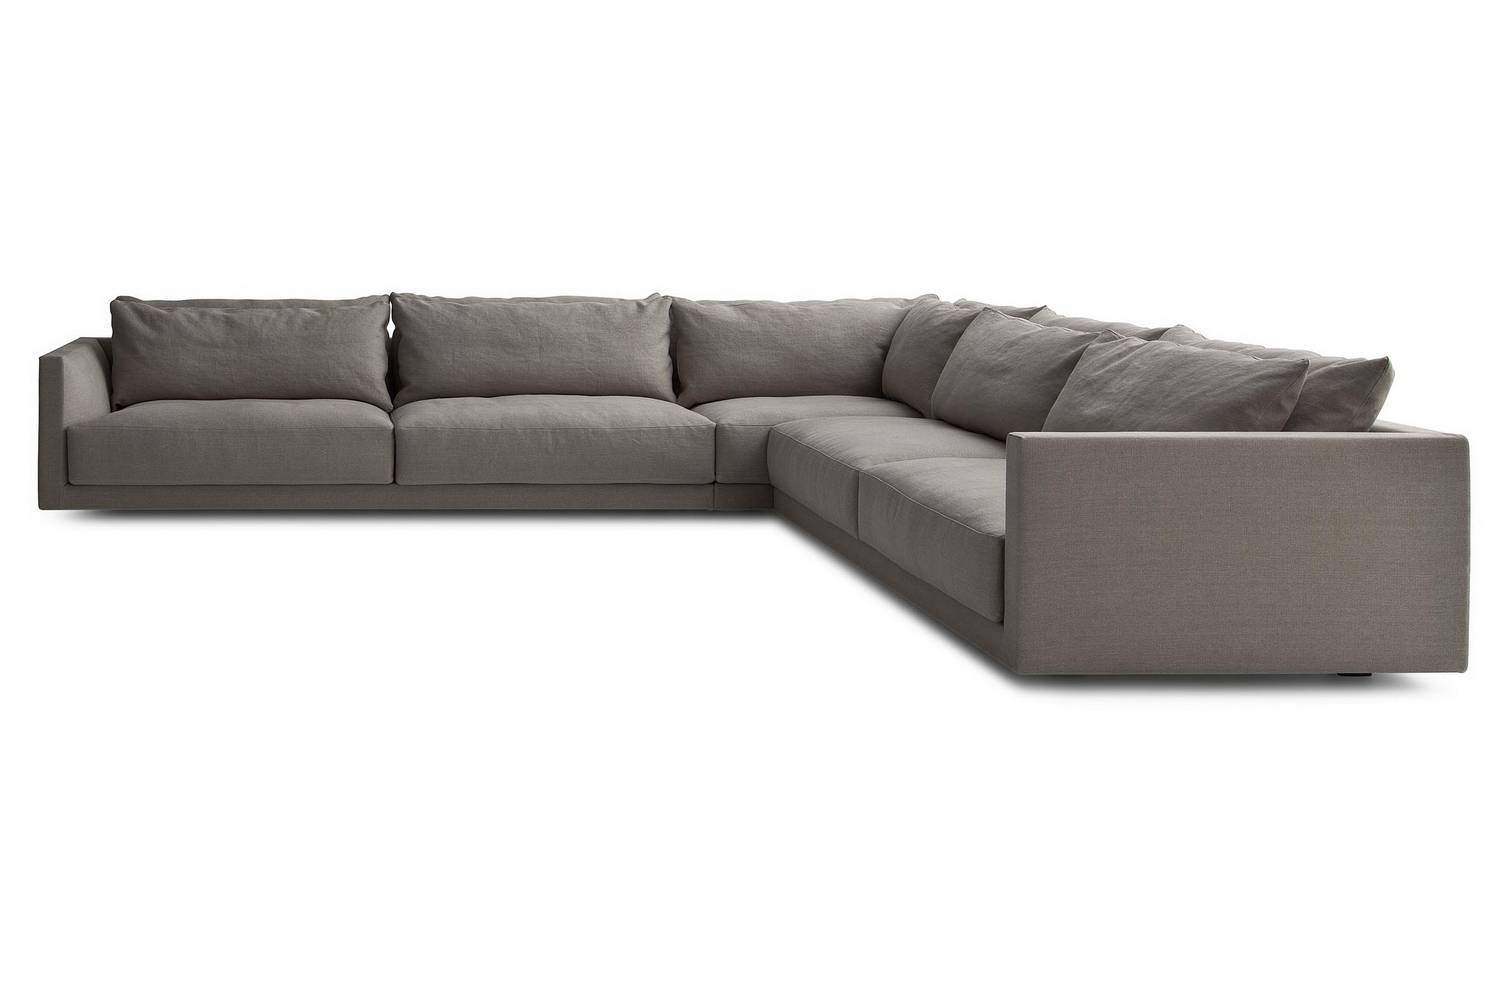 j m paquet sofa sofas for small rooms with design bristol by massaud poliform